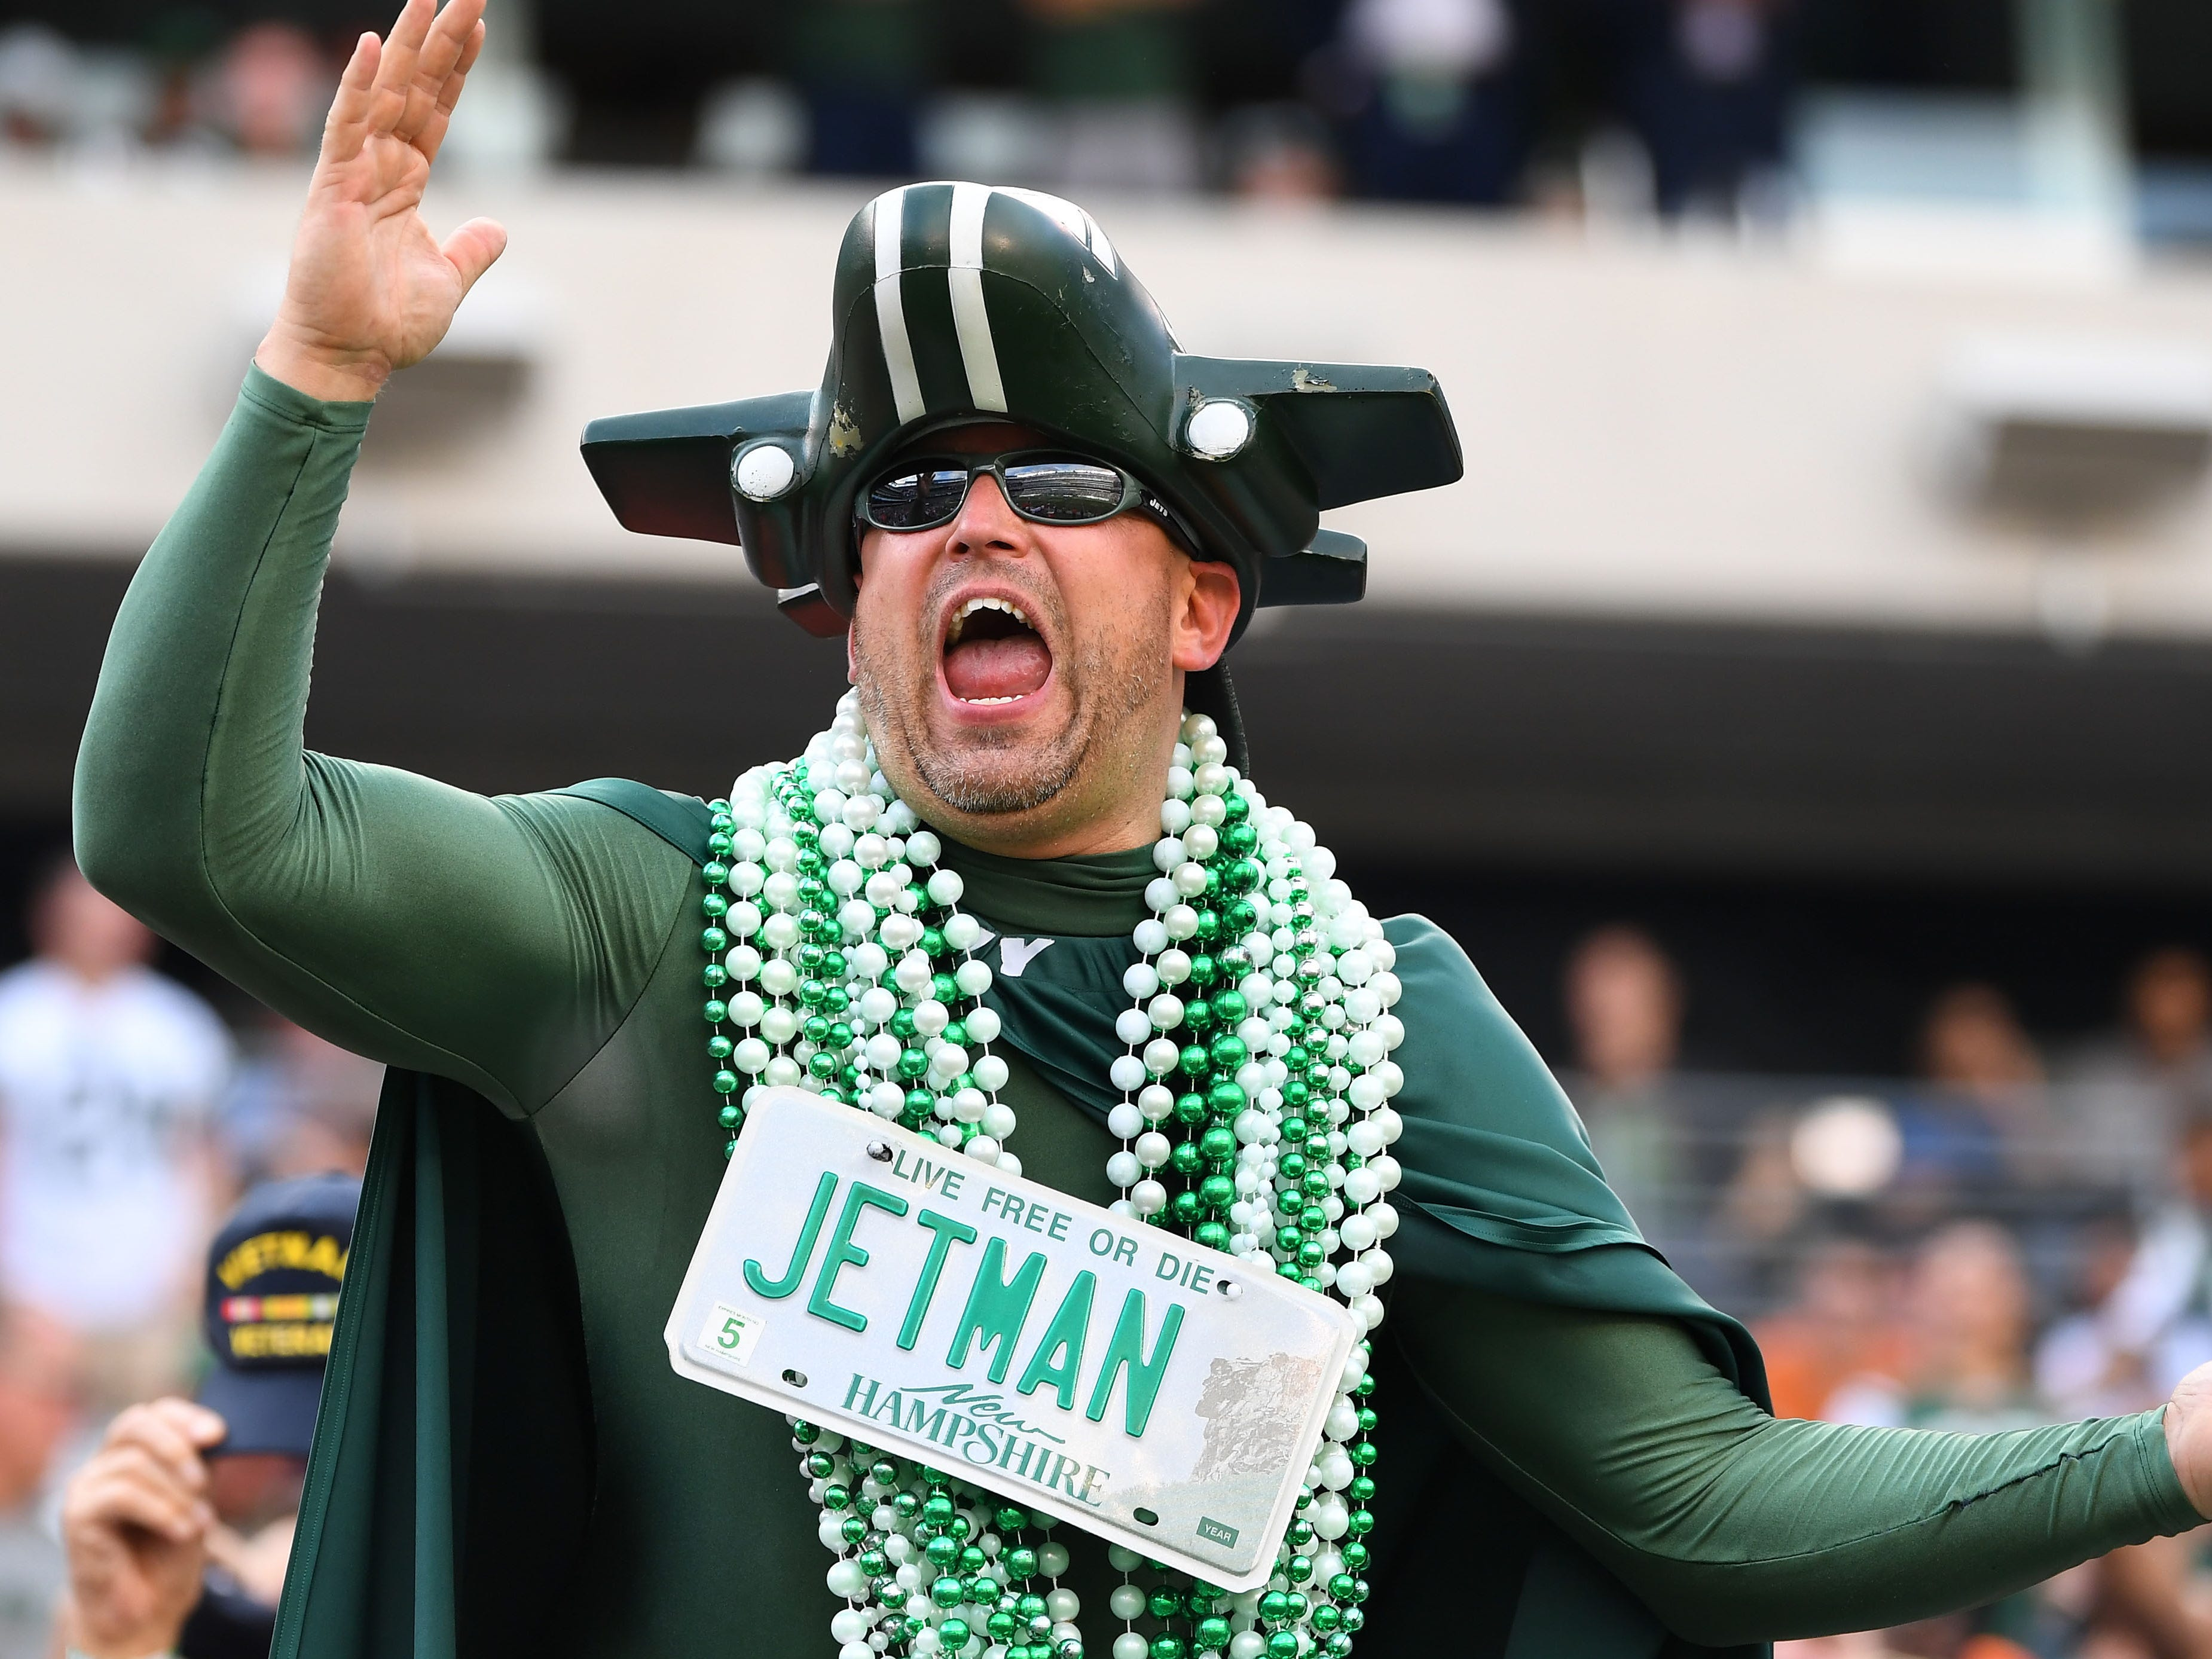 A New York Jets fan cheers from the stand during the game against the Denver Broncos at MetLife Stadium.